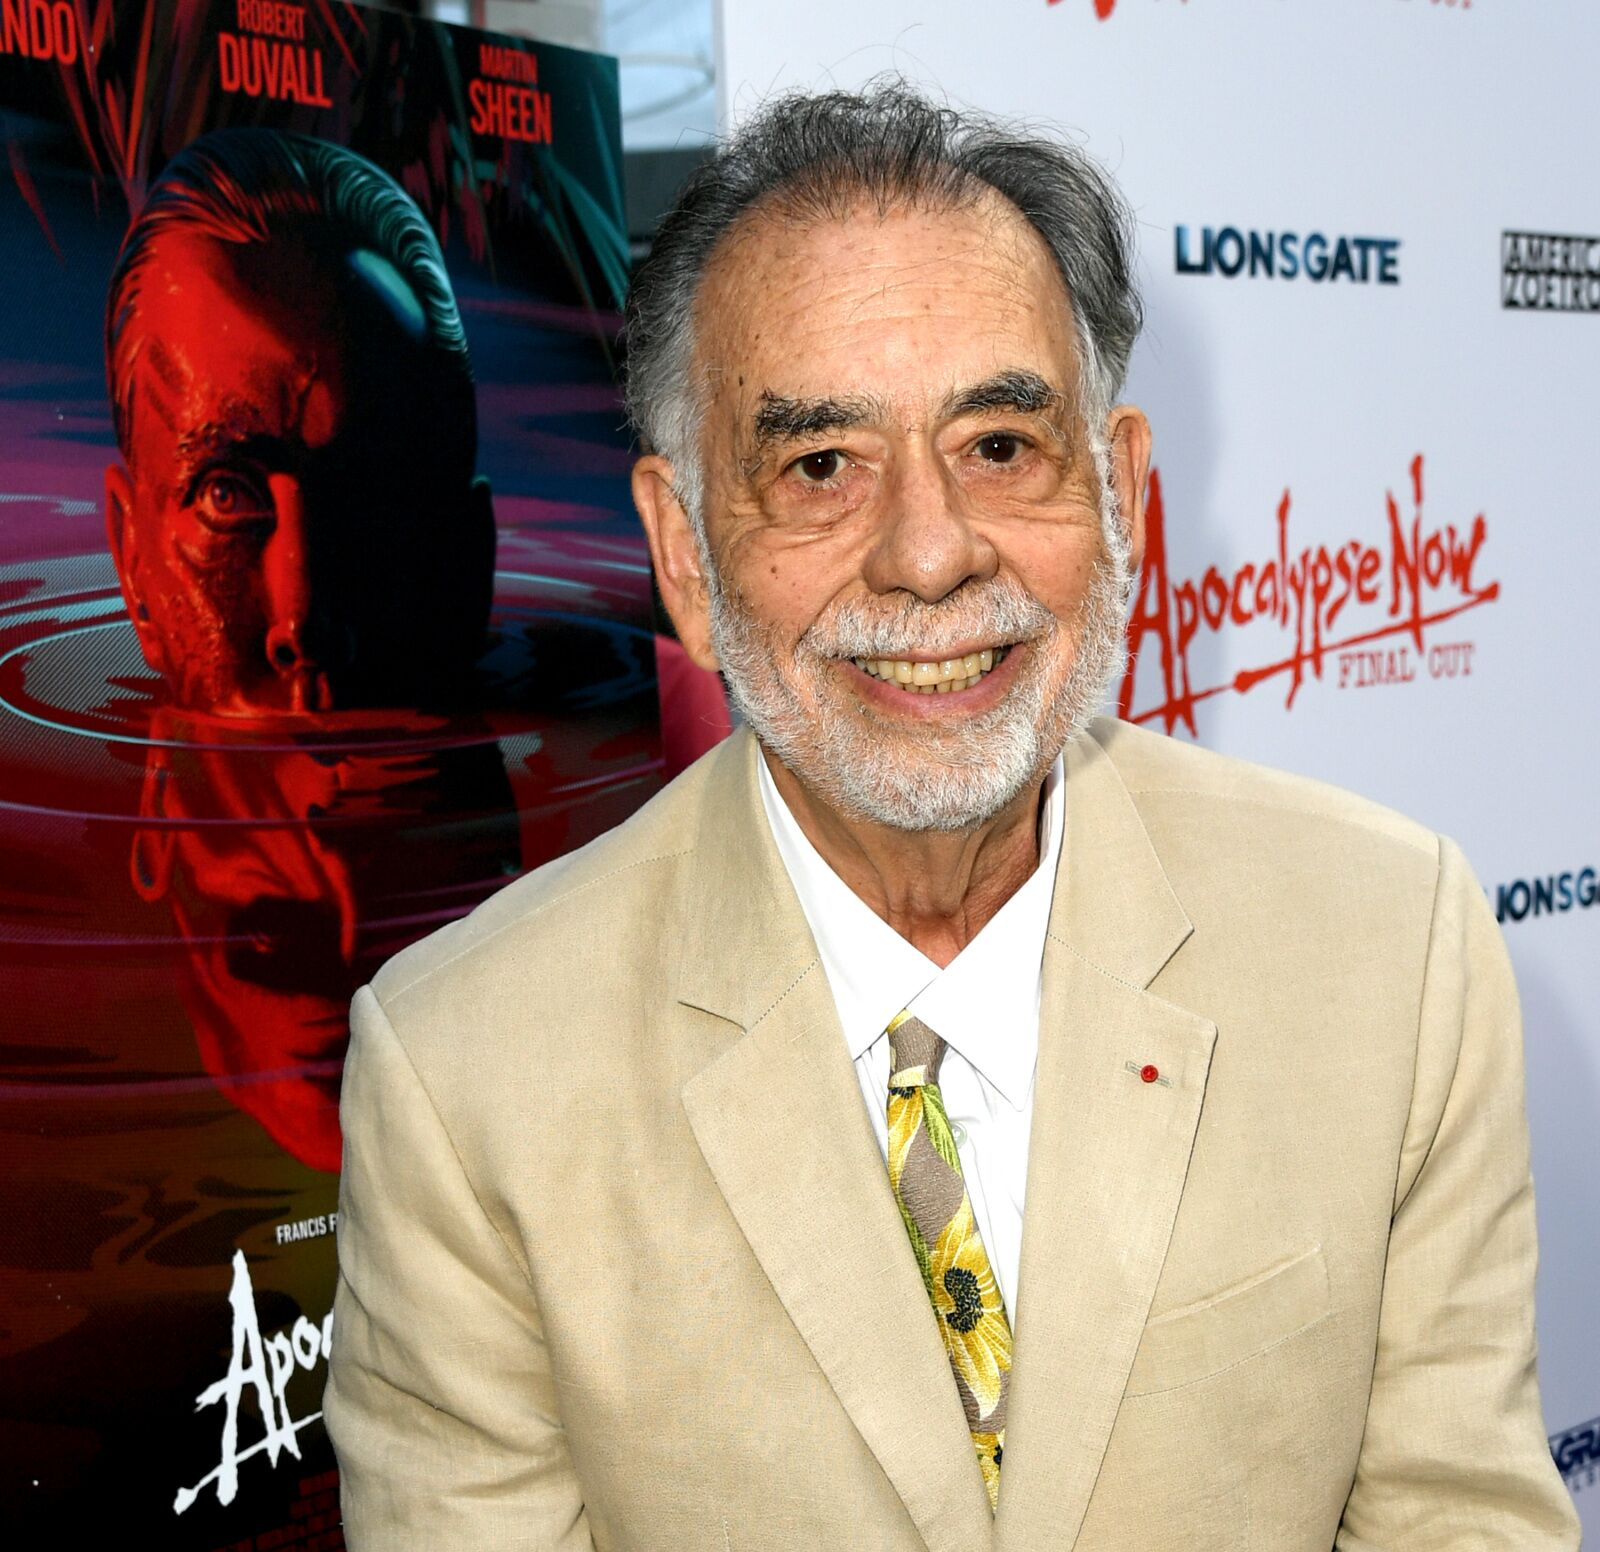 Dear Francis Ford Coppola, Marvel movies are far from despicable